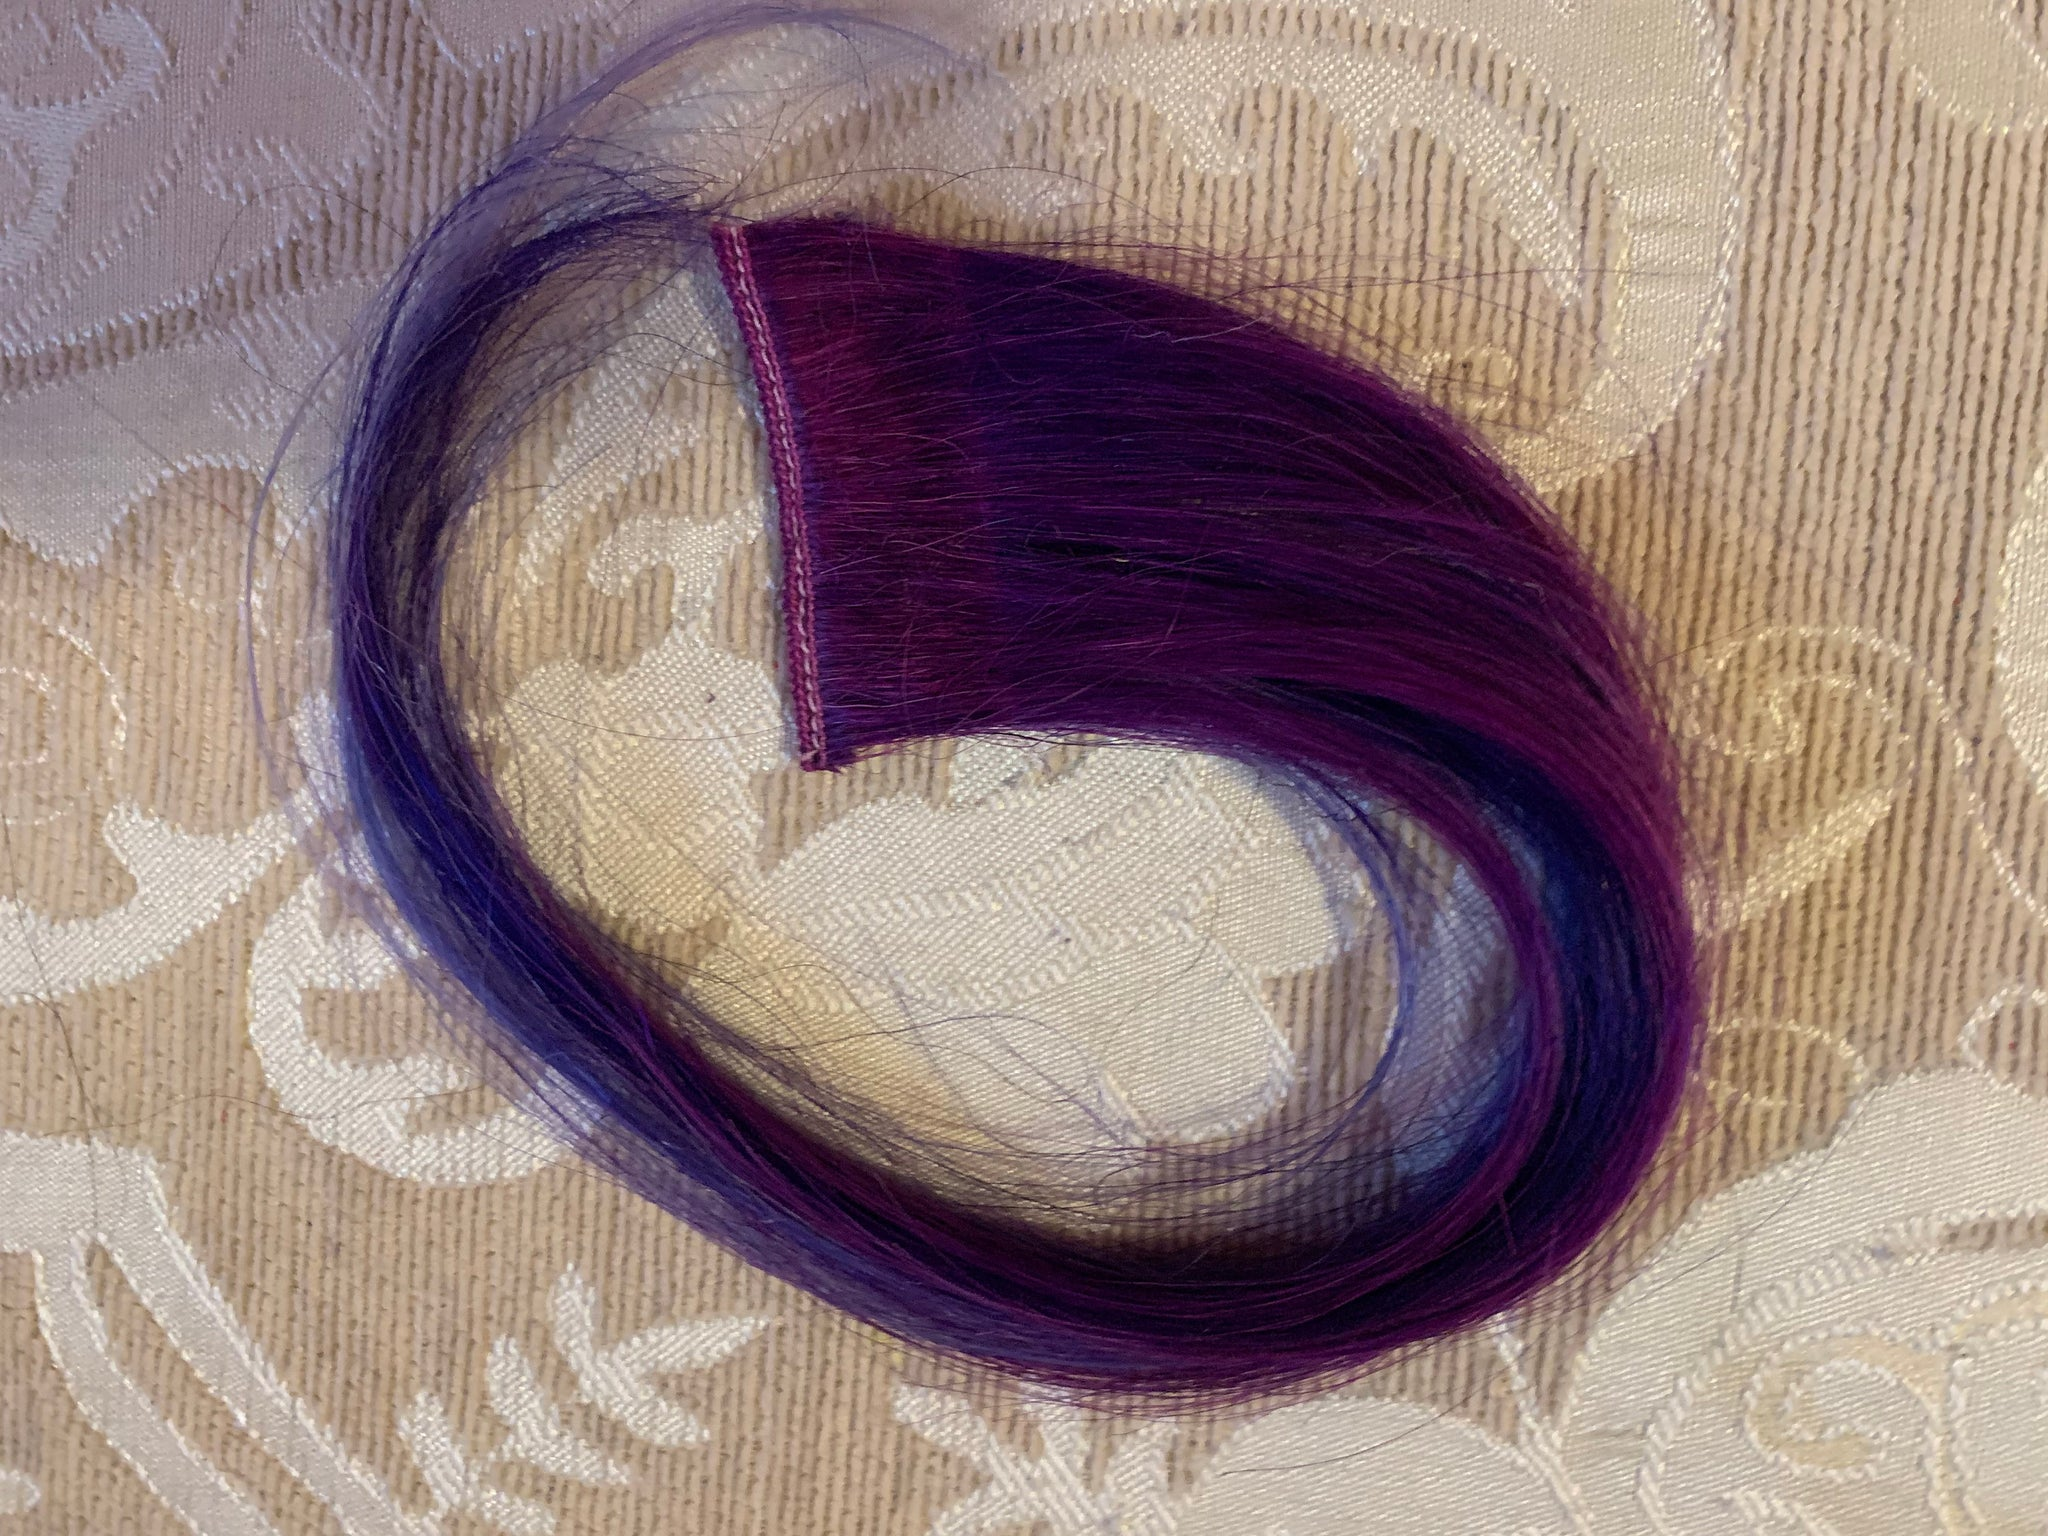 Bright Violet Purple Blue Lavender in 100% Human Hair Extensions Clip or Tape Streaks 12 inches long